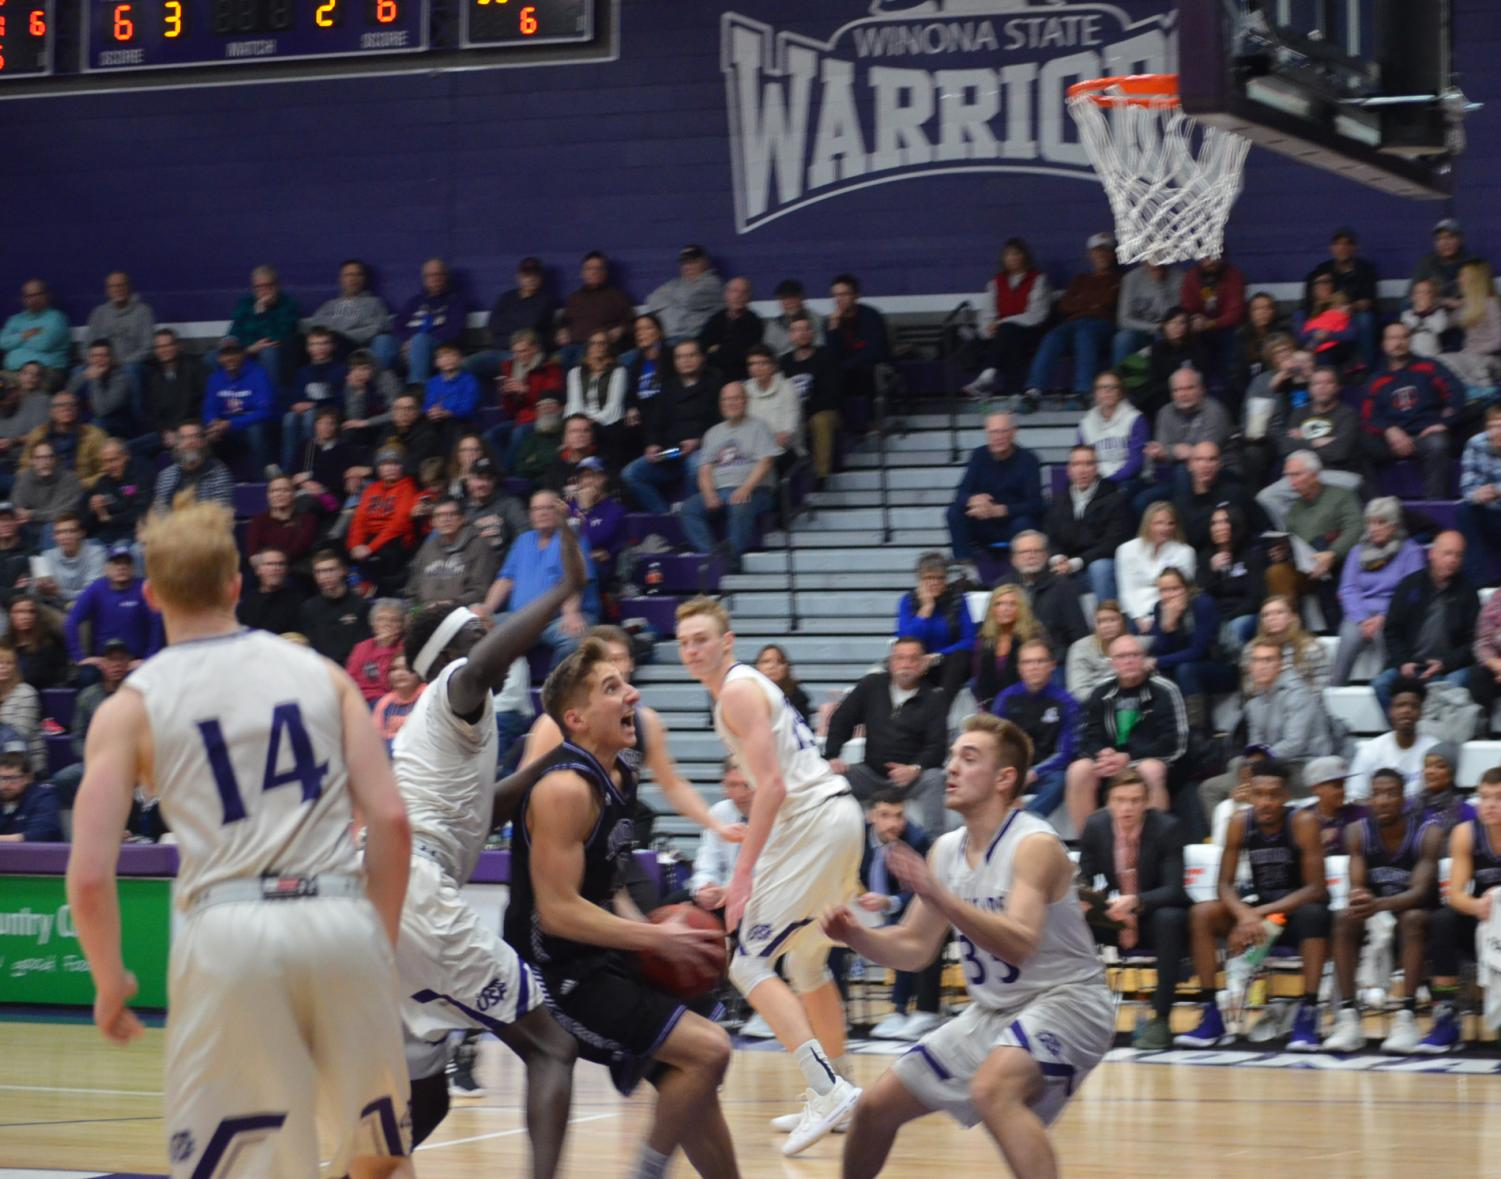 Junior guard Caleb Wagner charges toward the net in an attempt on basket during a game against the University of Sioux Falls in McCown Gymnasium.